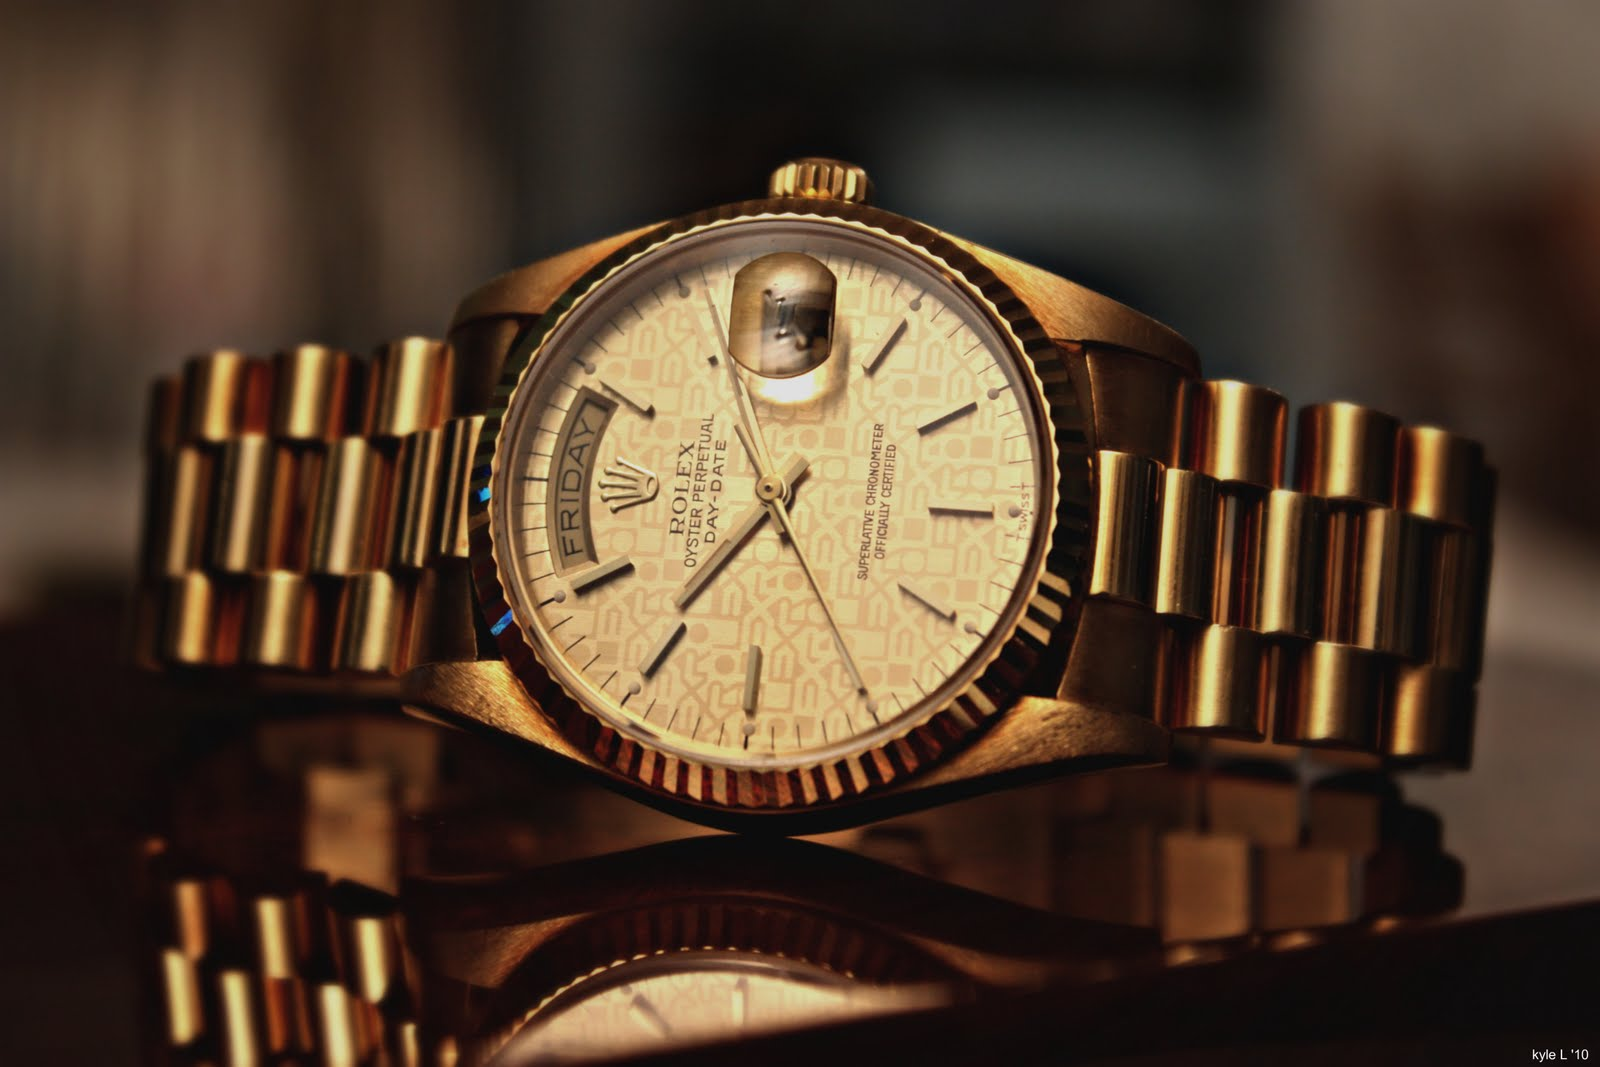 Kyle S Watch Wallpapers Rolex Day Date